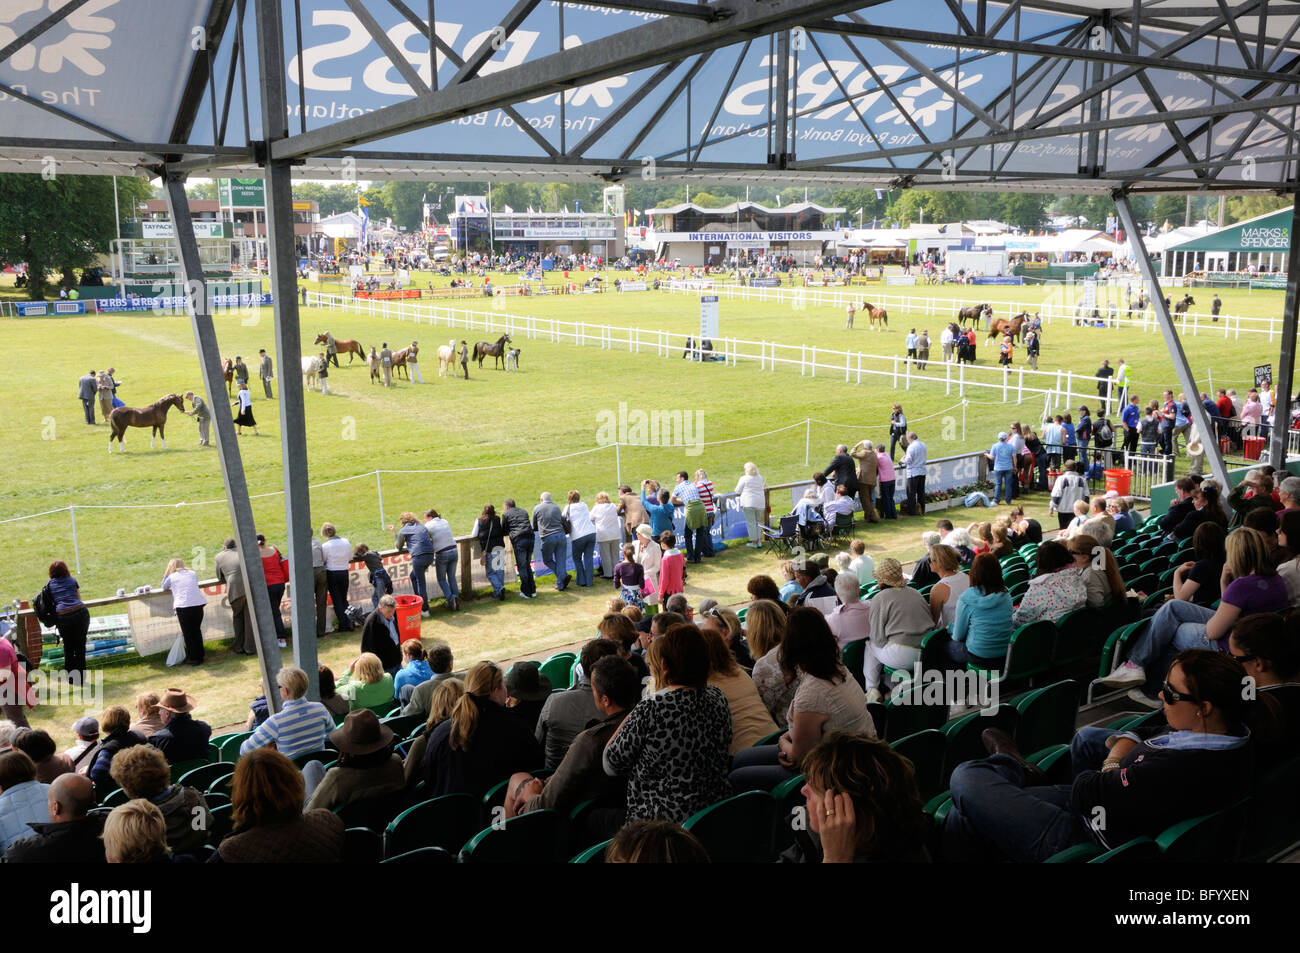 Watching the judging of the pony competitions from the stands of the Main Ring at the 2009 Royal Highland Show, - Stock Image